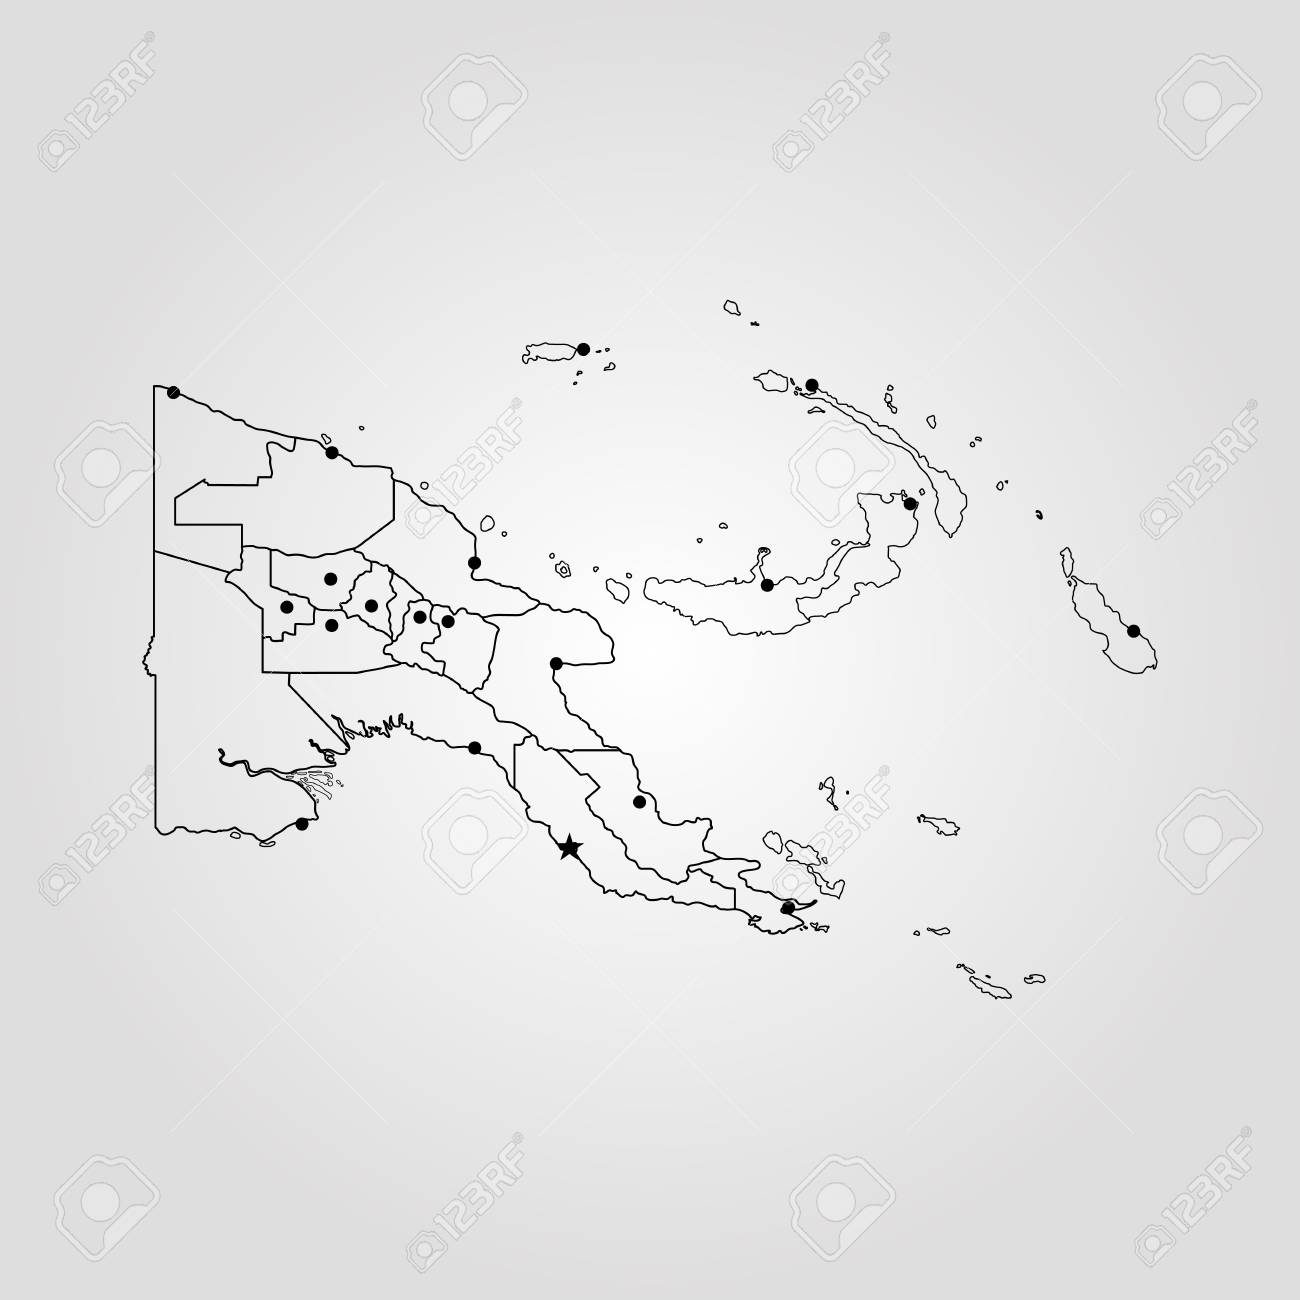 Map Of Papua New Guinea. Vector Illustration. World Map Royalty Free ...